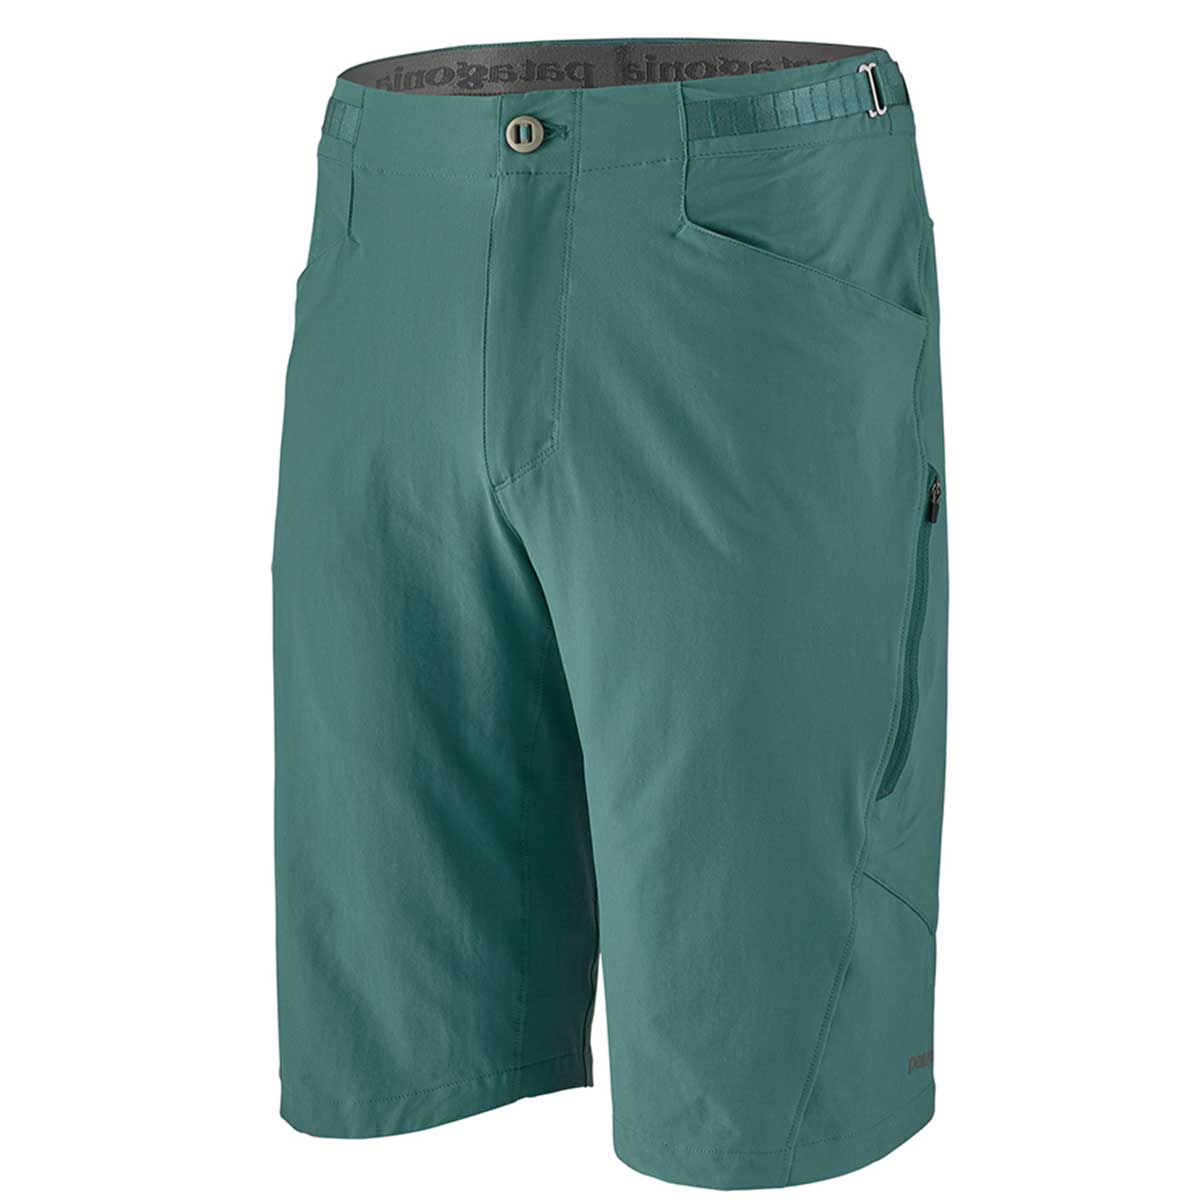 Men's Patagonia Dirt Craft mountain bike shorts in Tasmanian Teal